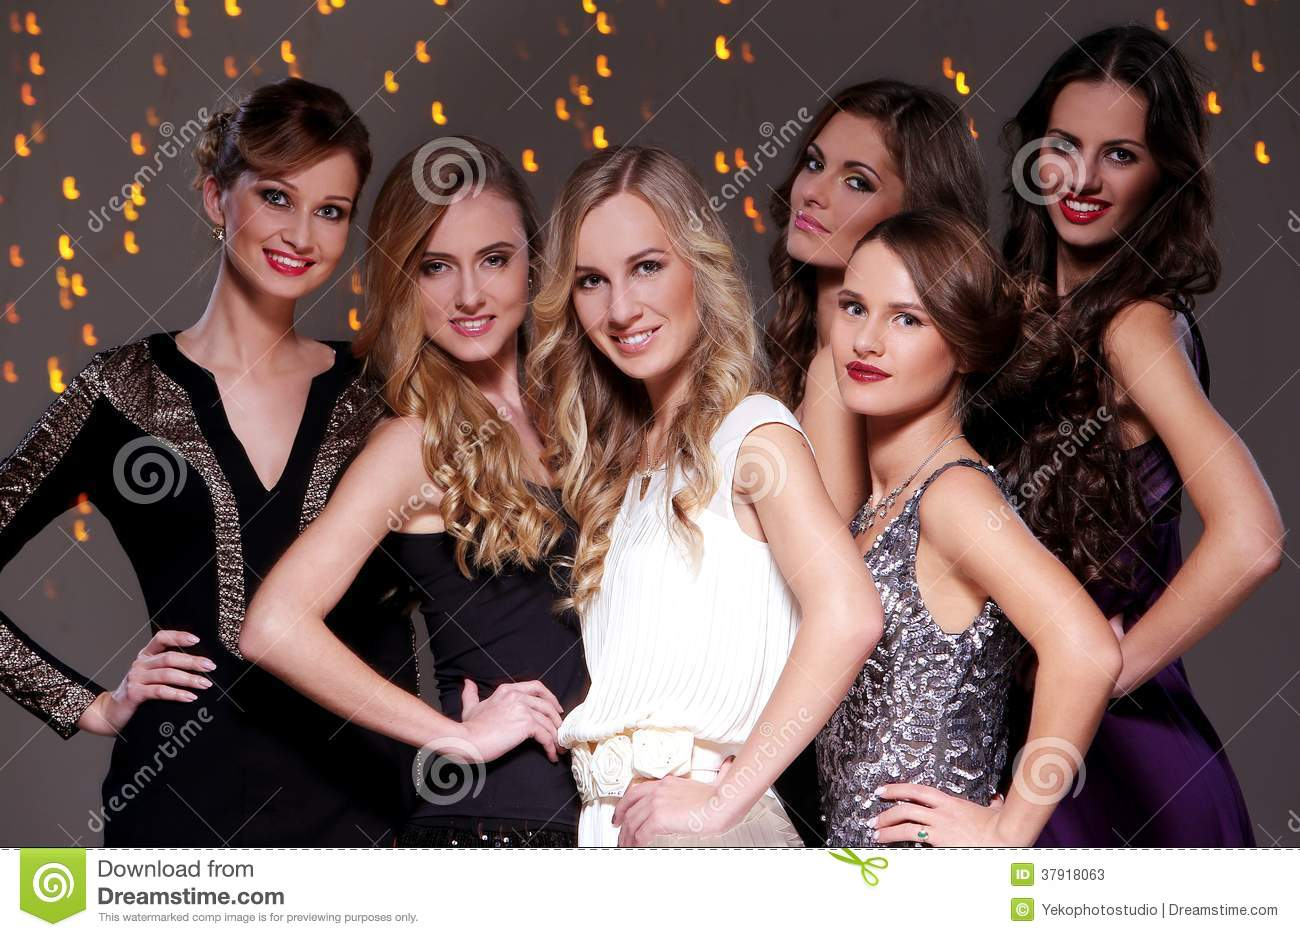 Best Friends Having A New Year Party Stock Image - Image of blonde ...